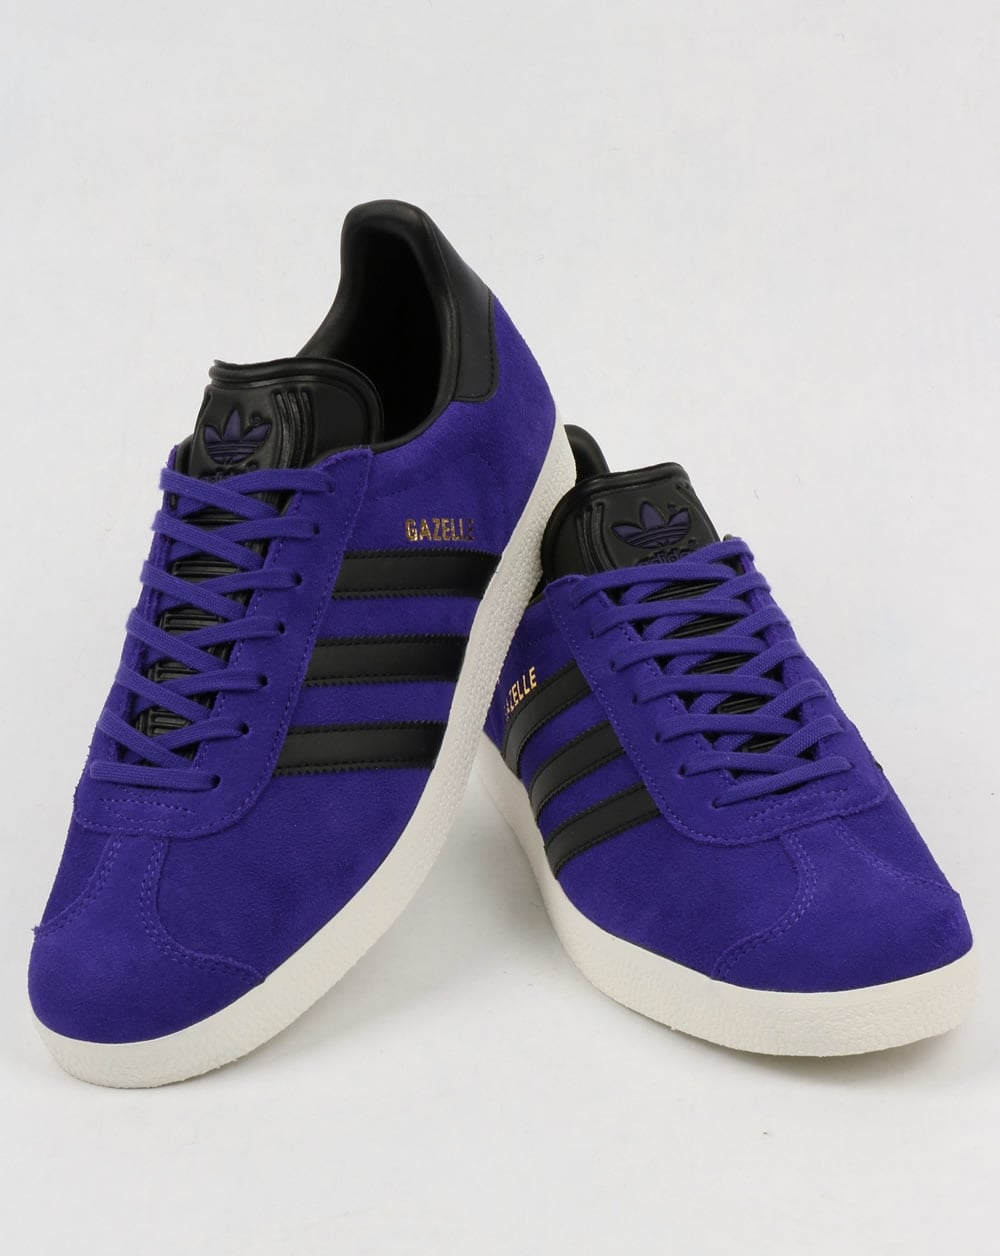 Mens Adidas Shoes Gazelle Black